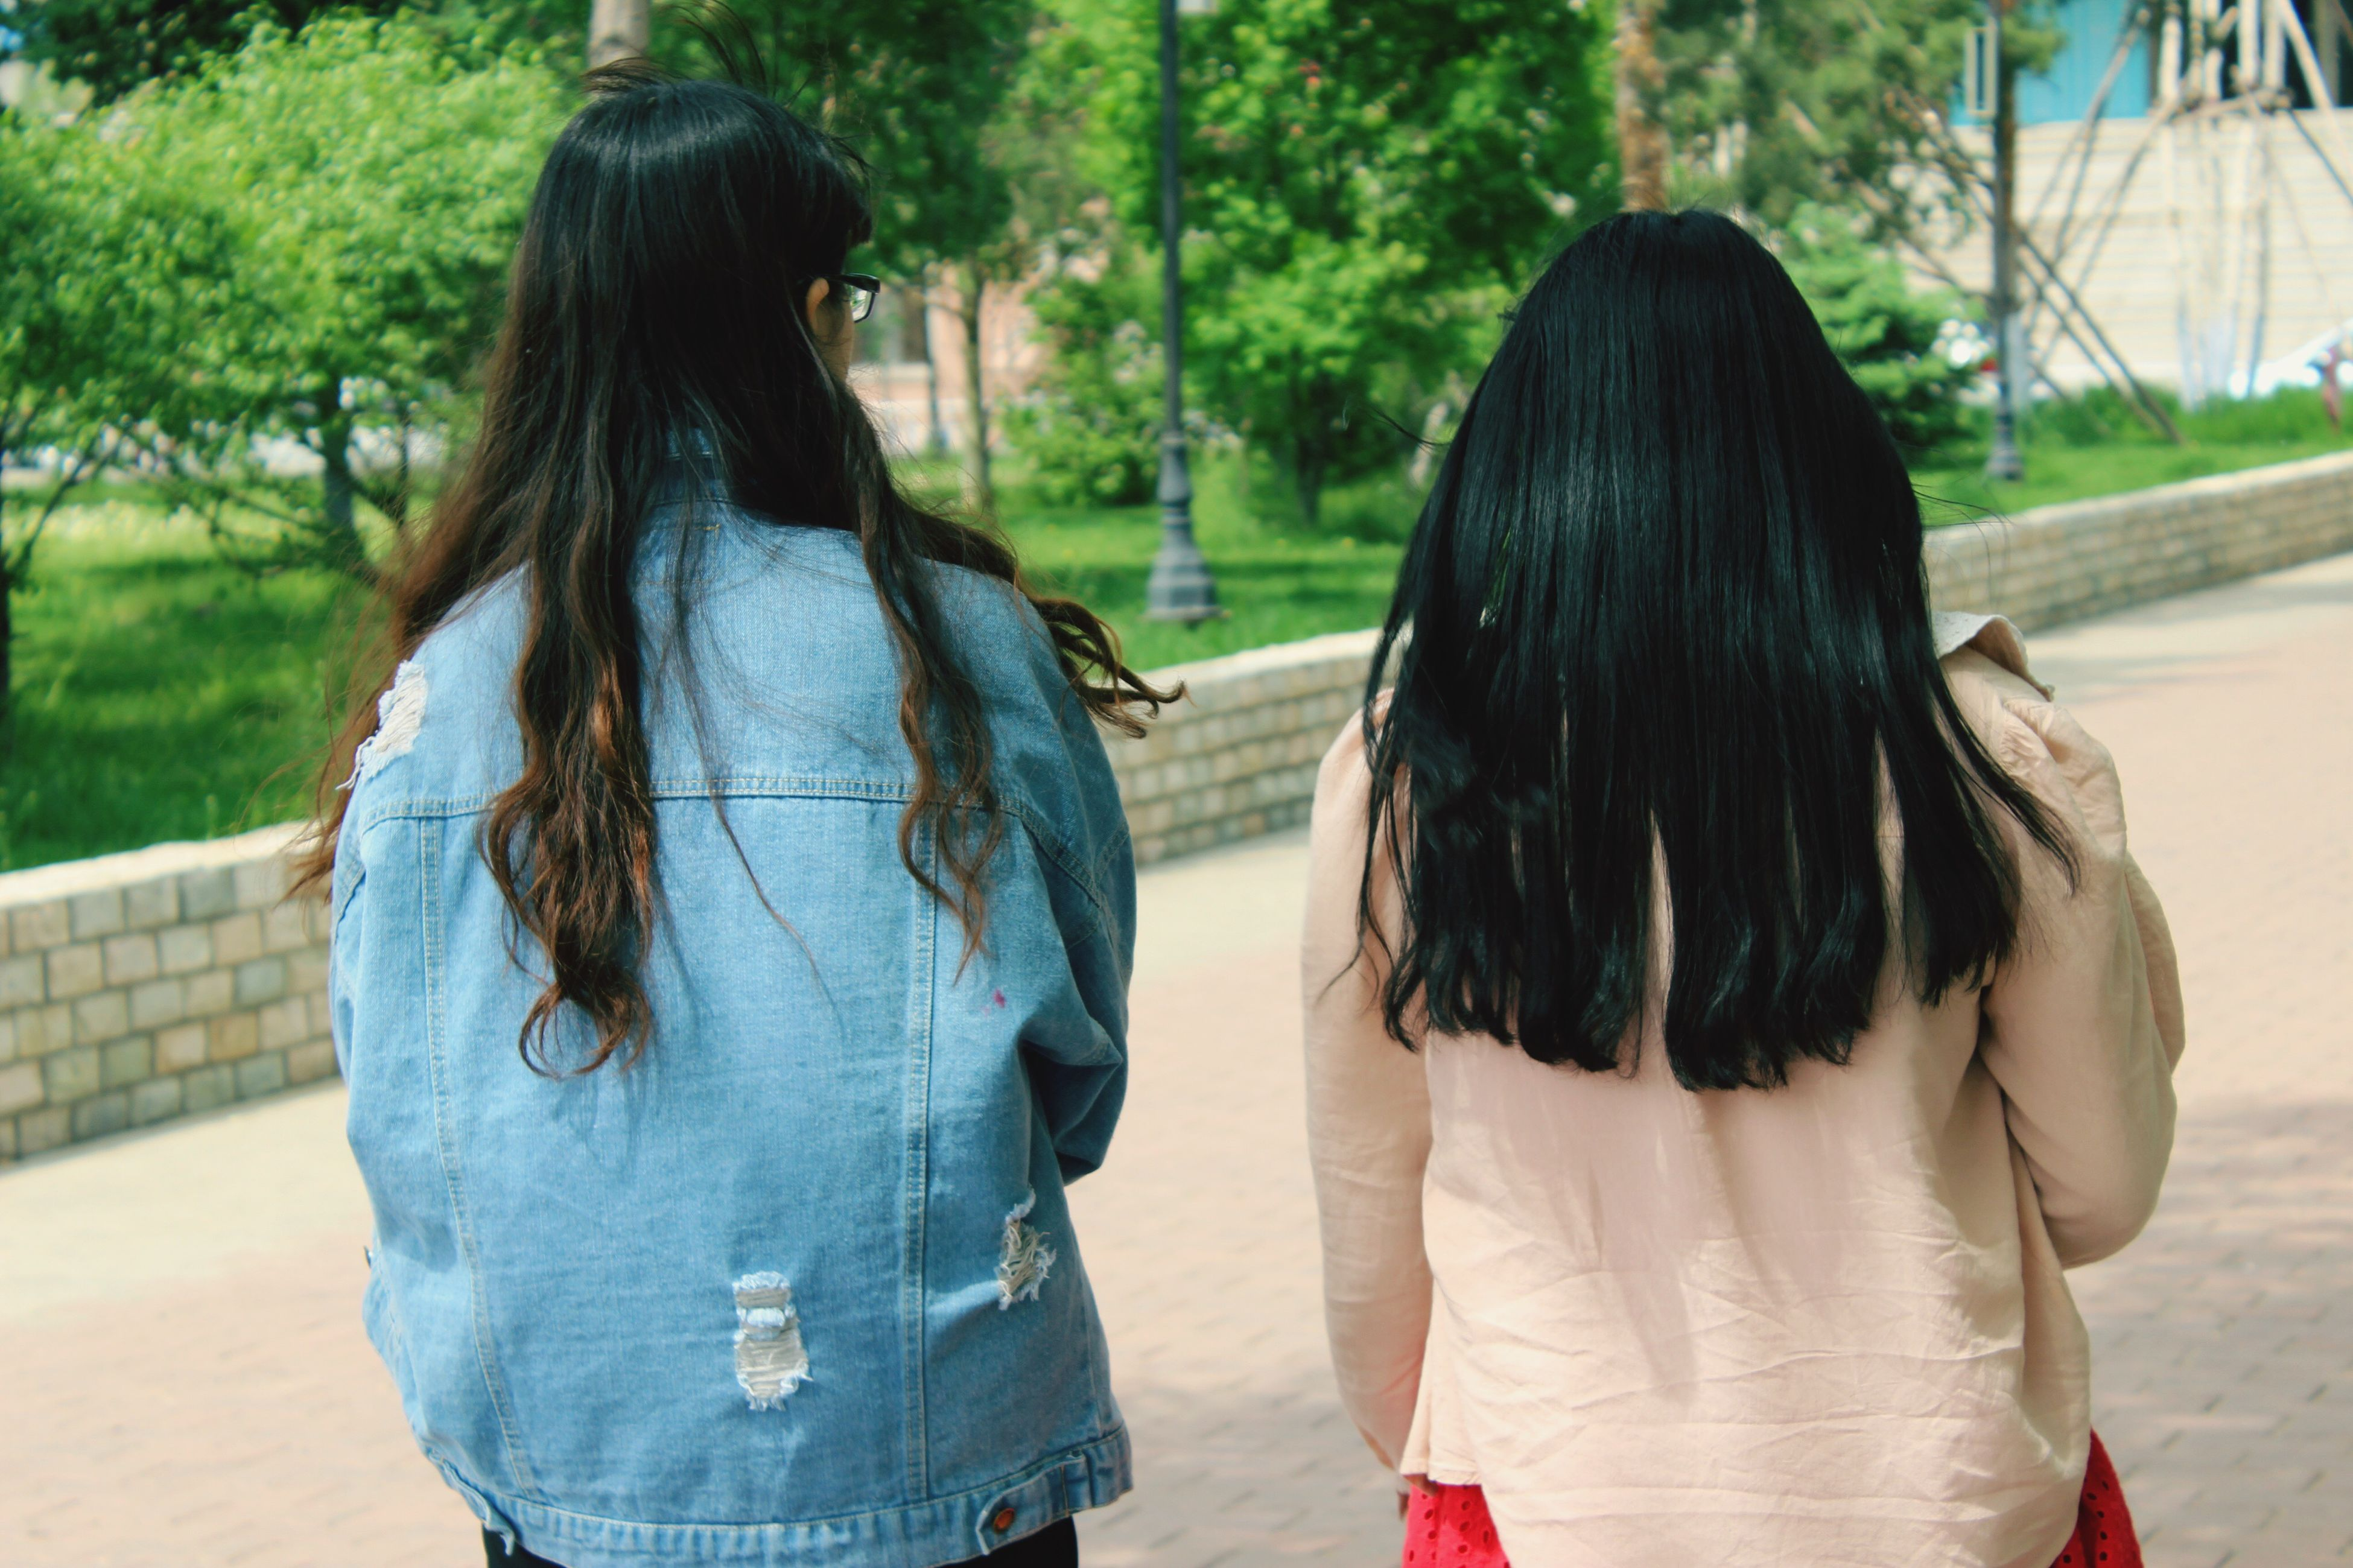 rear view, lifestyles, person, leisure activity, long hair, casual clothing, standing, focus on foreground, waist up, brown hair, outdoors, girls, three quarter length, day, togetherness, walking, tree